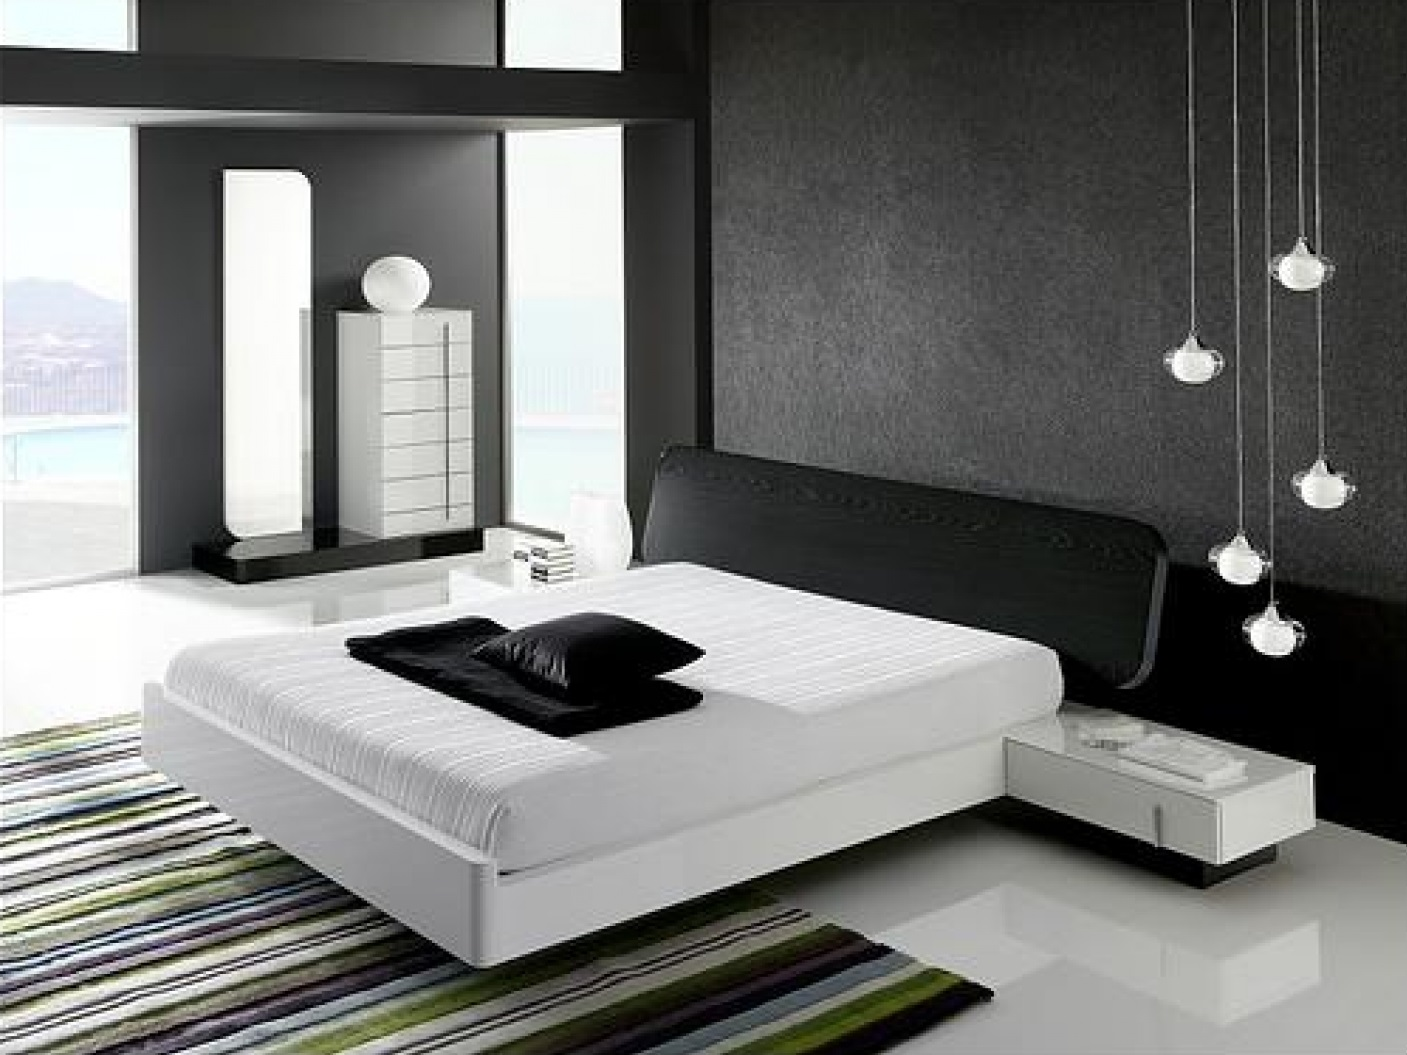 Minimalist Black and White Bedroom with Floating Bed and Colorful Rug for Decoration